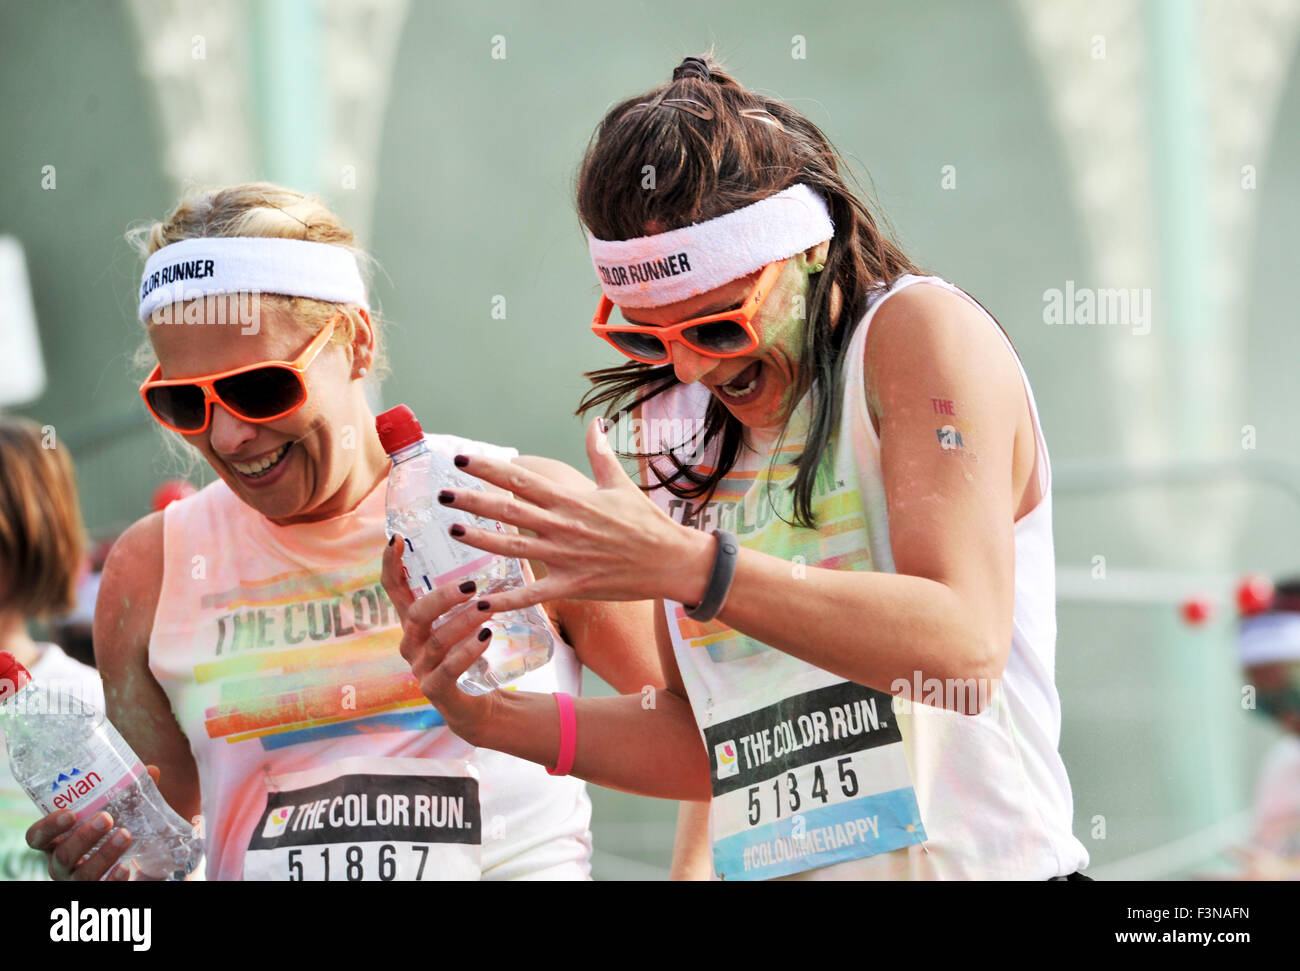 Brighton Sussex UK Saturday 10th October 2015 - Thousands of people take part in the annual Color Run event on Brighton - Stock Image